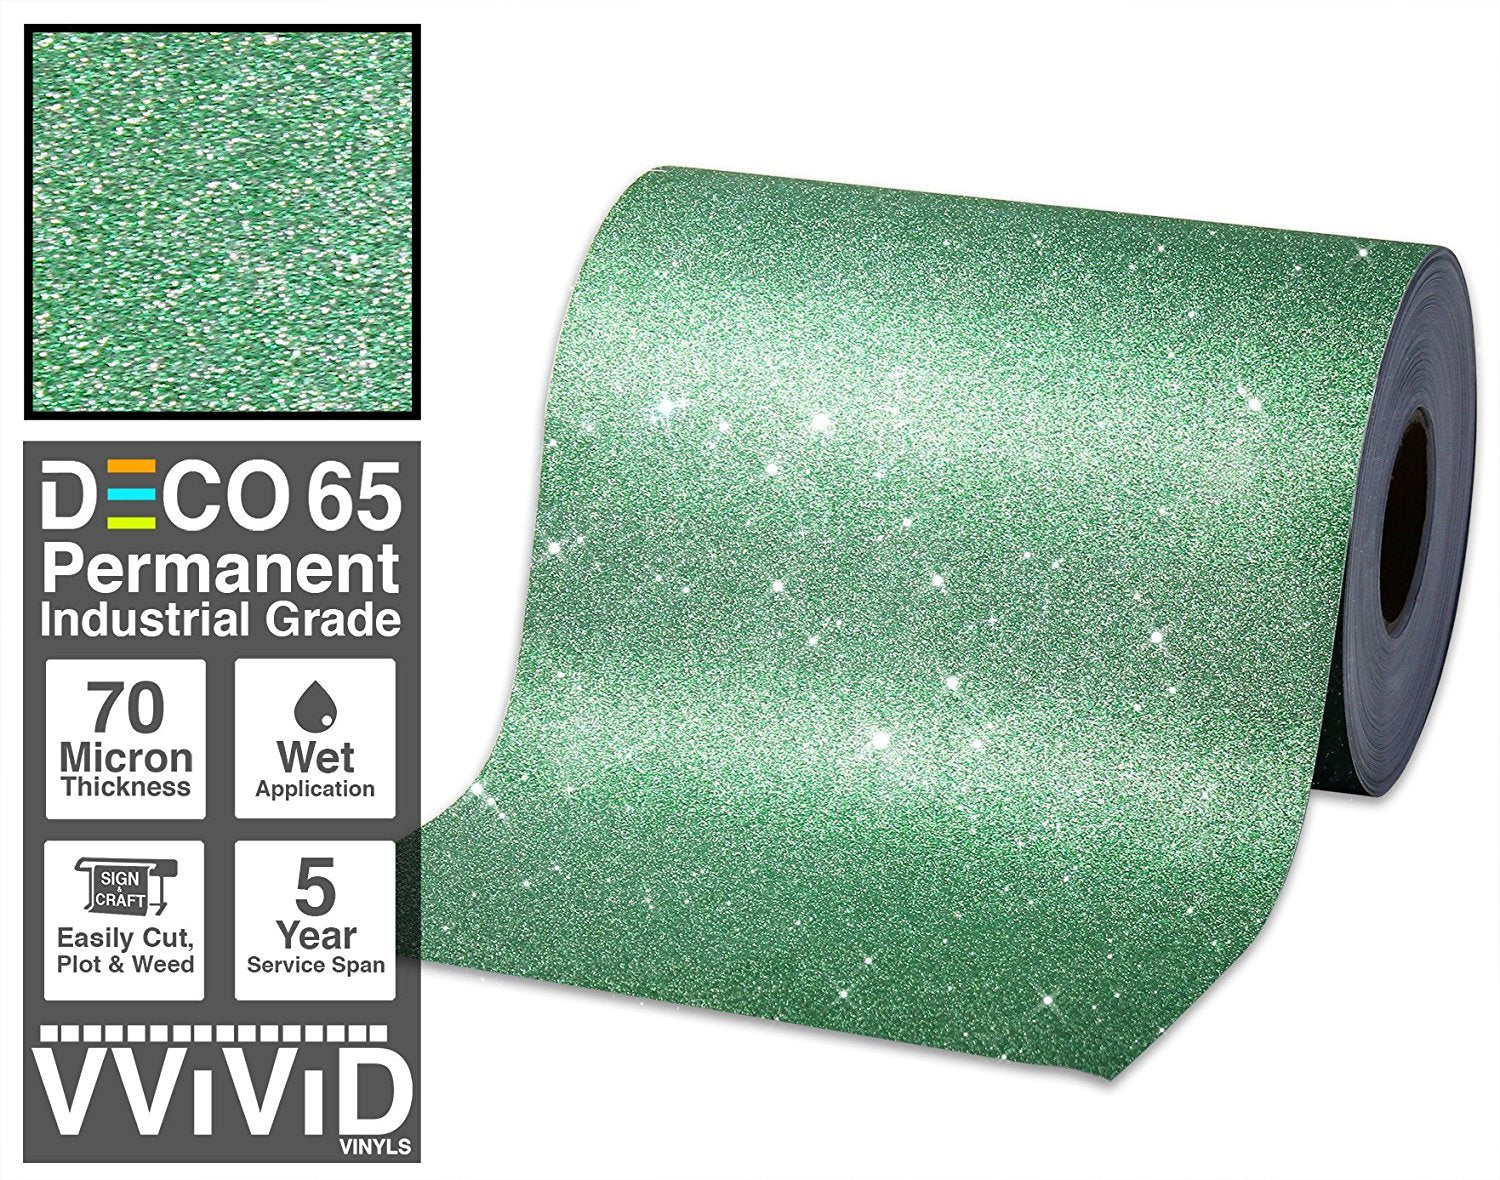 VViViD Glitter Green DECO65 Permanent Adhesive Craft Vinyl Roll for Cricut, Silhouette & Cameo